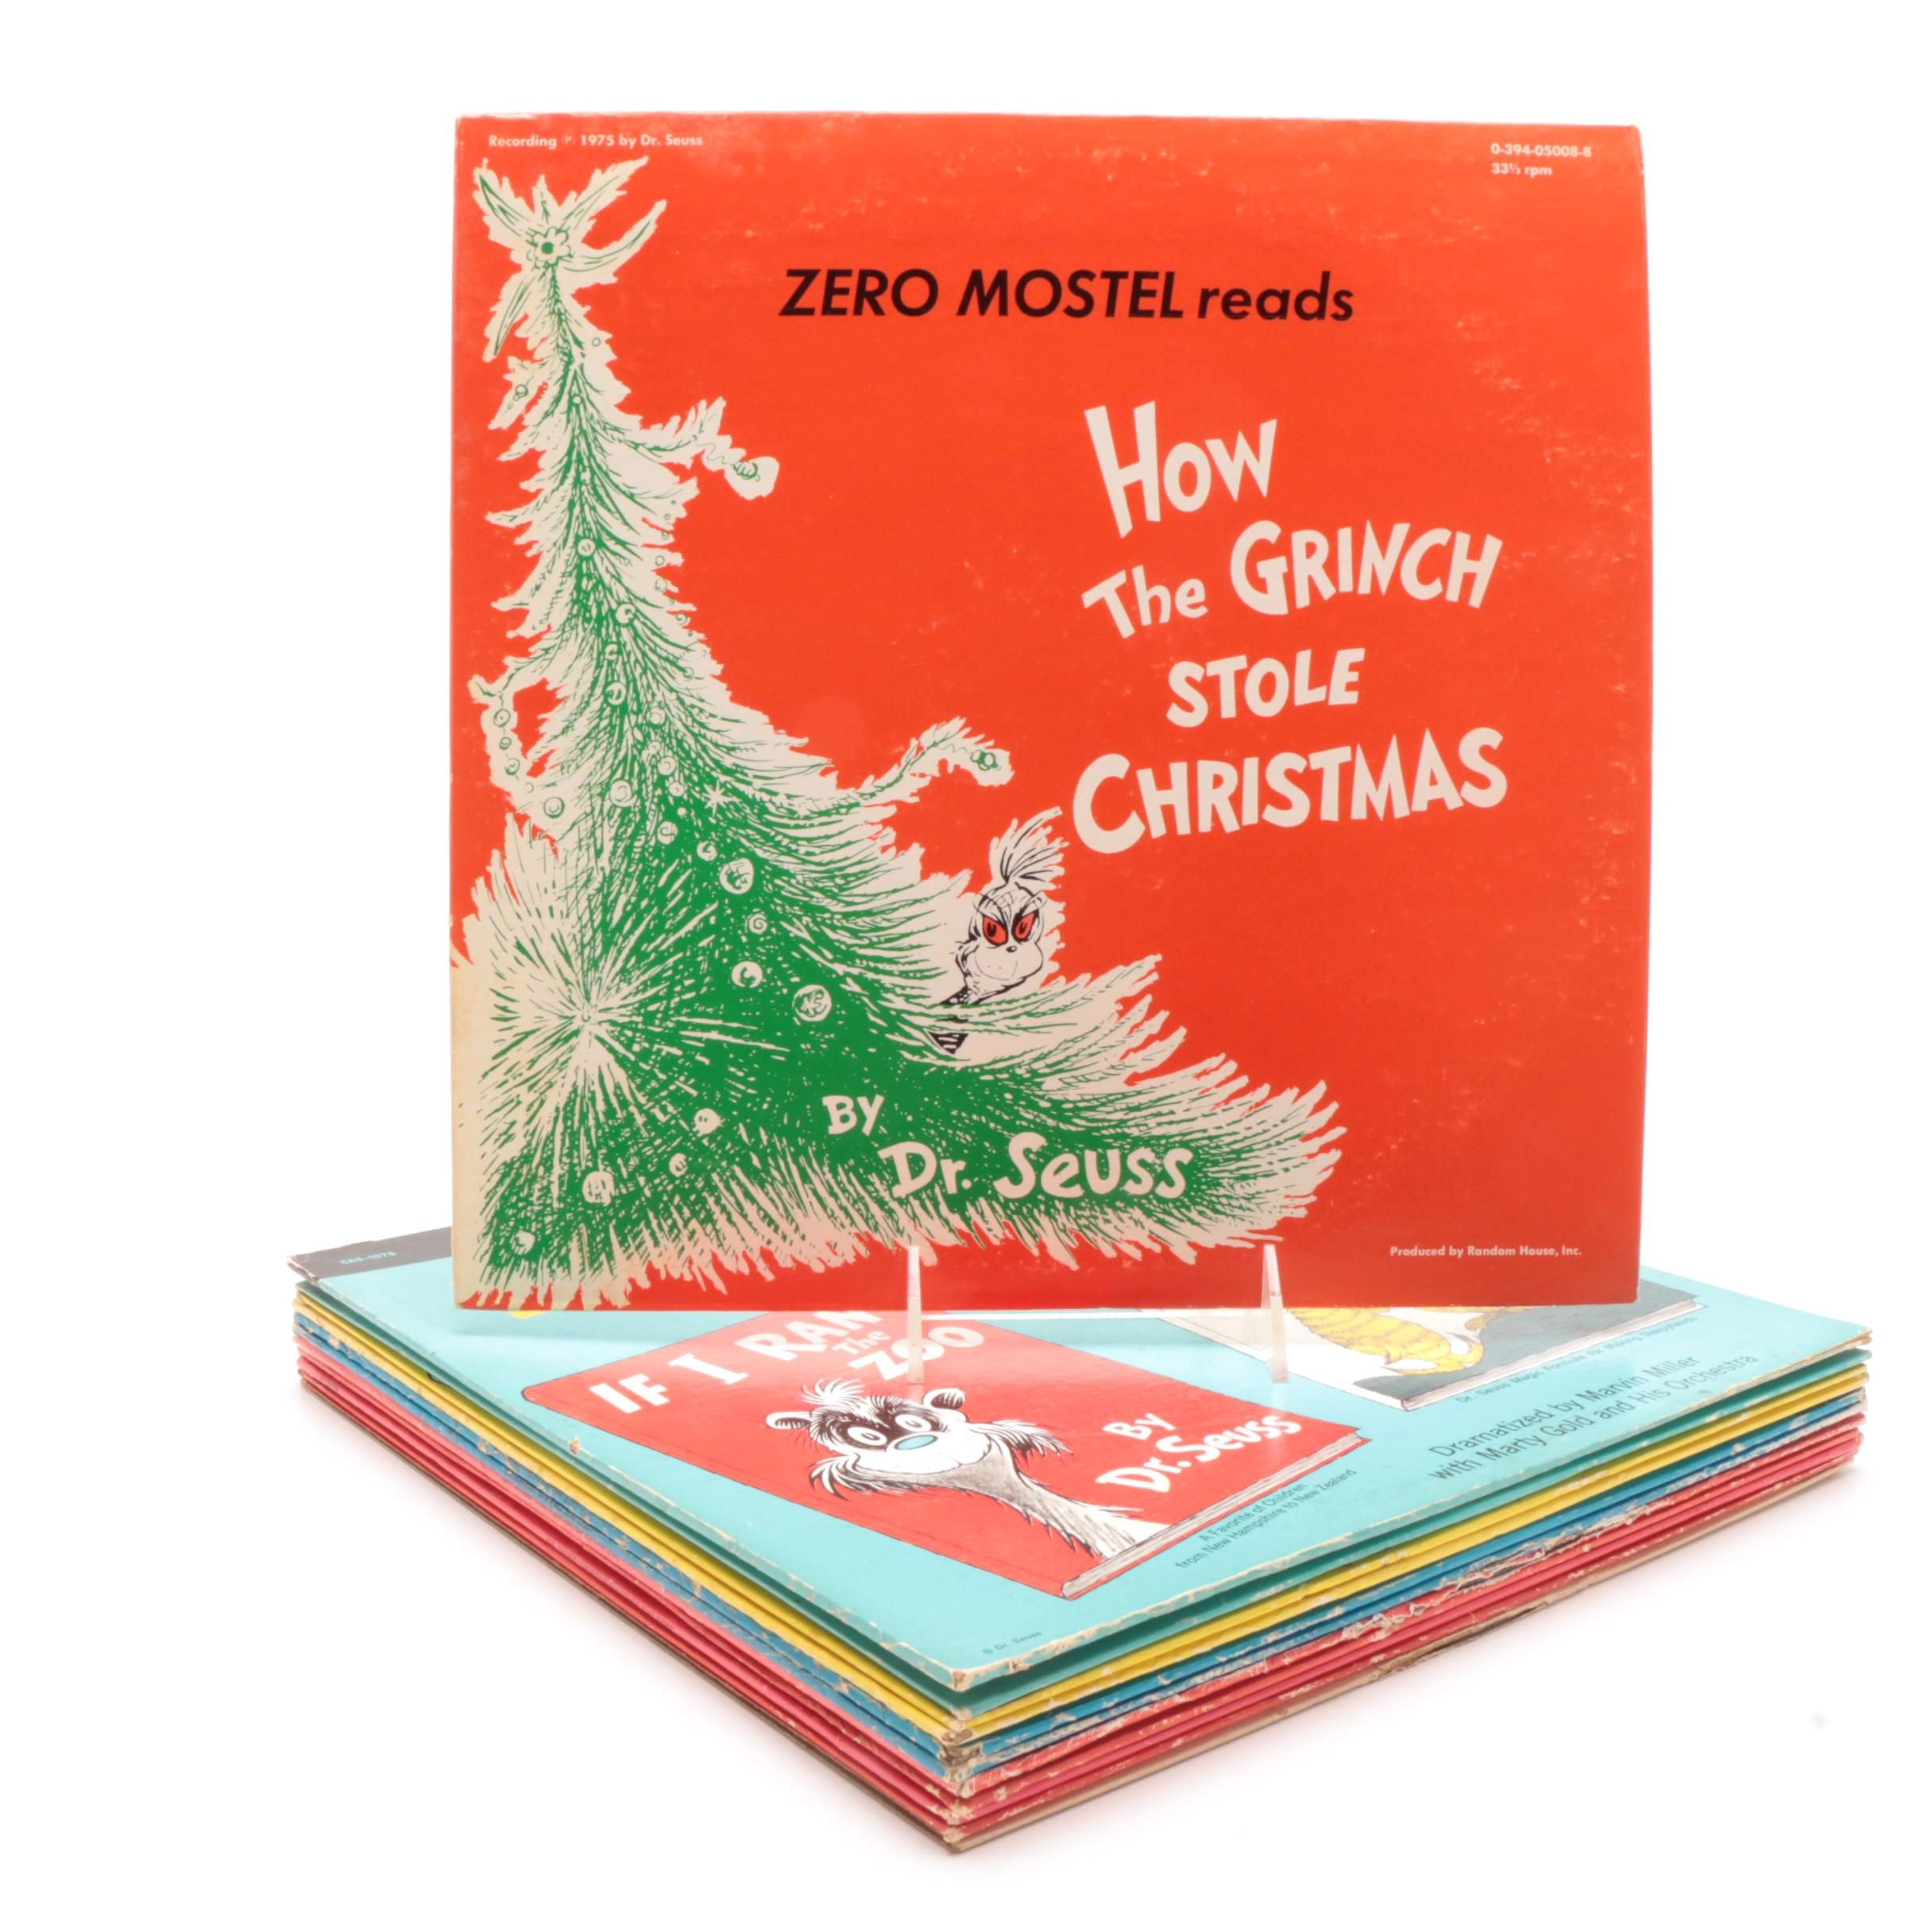 Collection of Dr. Seuss Record Albums